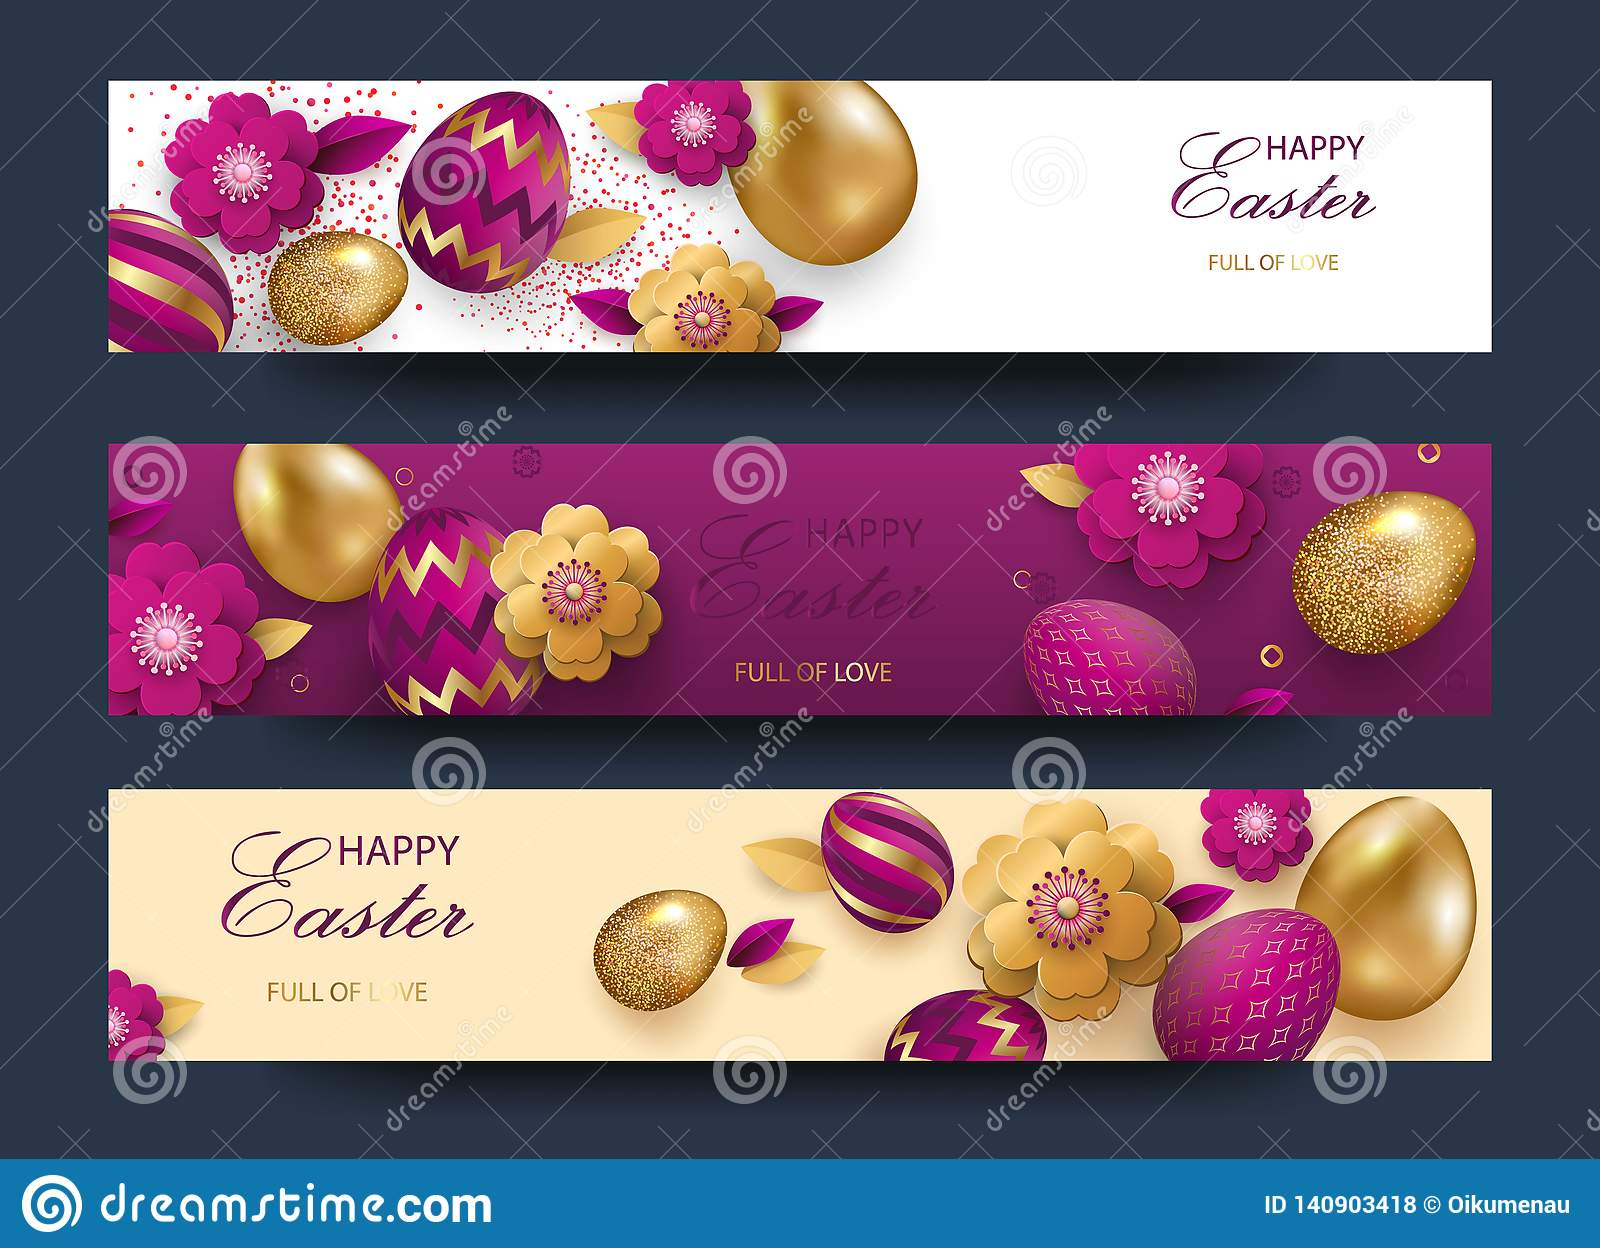 Easter card with gold ornate golden eggs on a light background. Vector .Place for your text. Golden eggs with small floral and